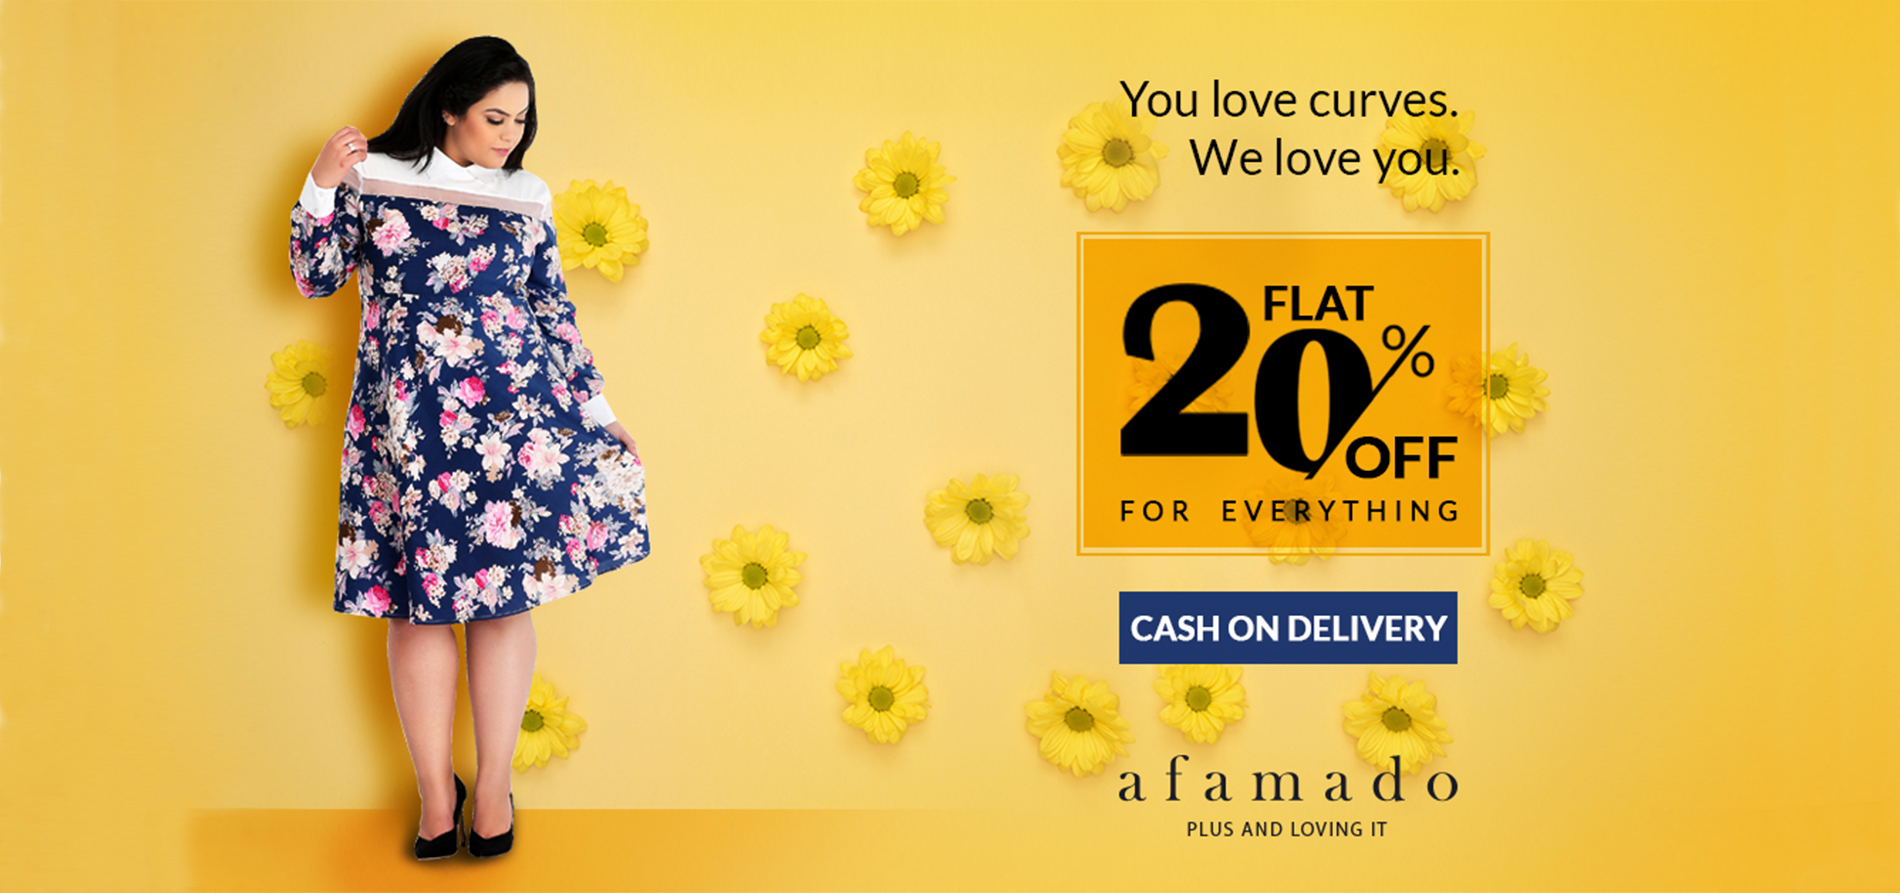 Flat 20% OFF on Everything